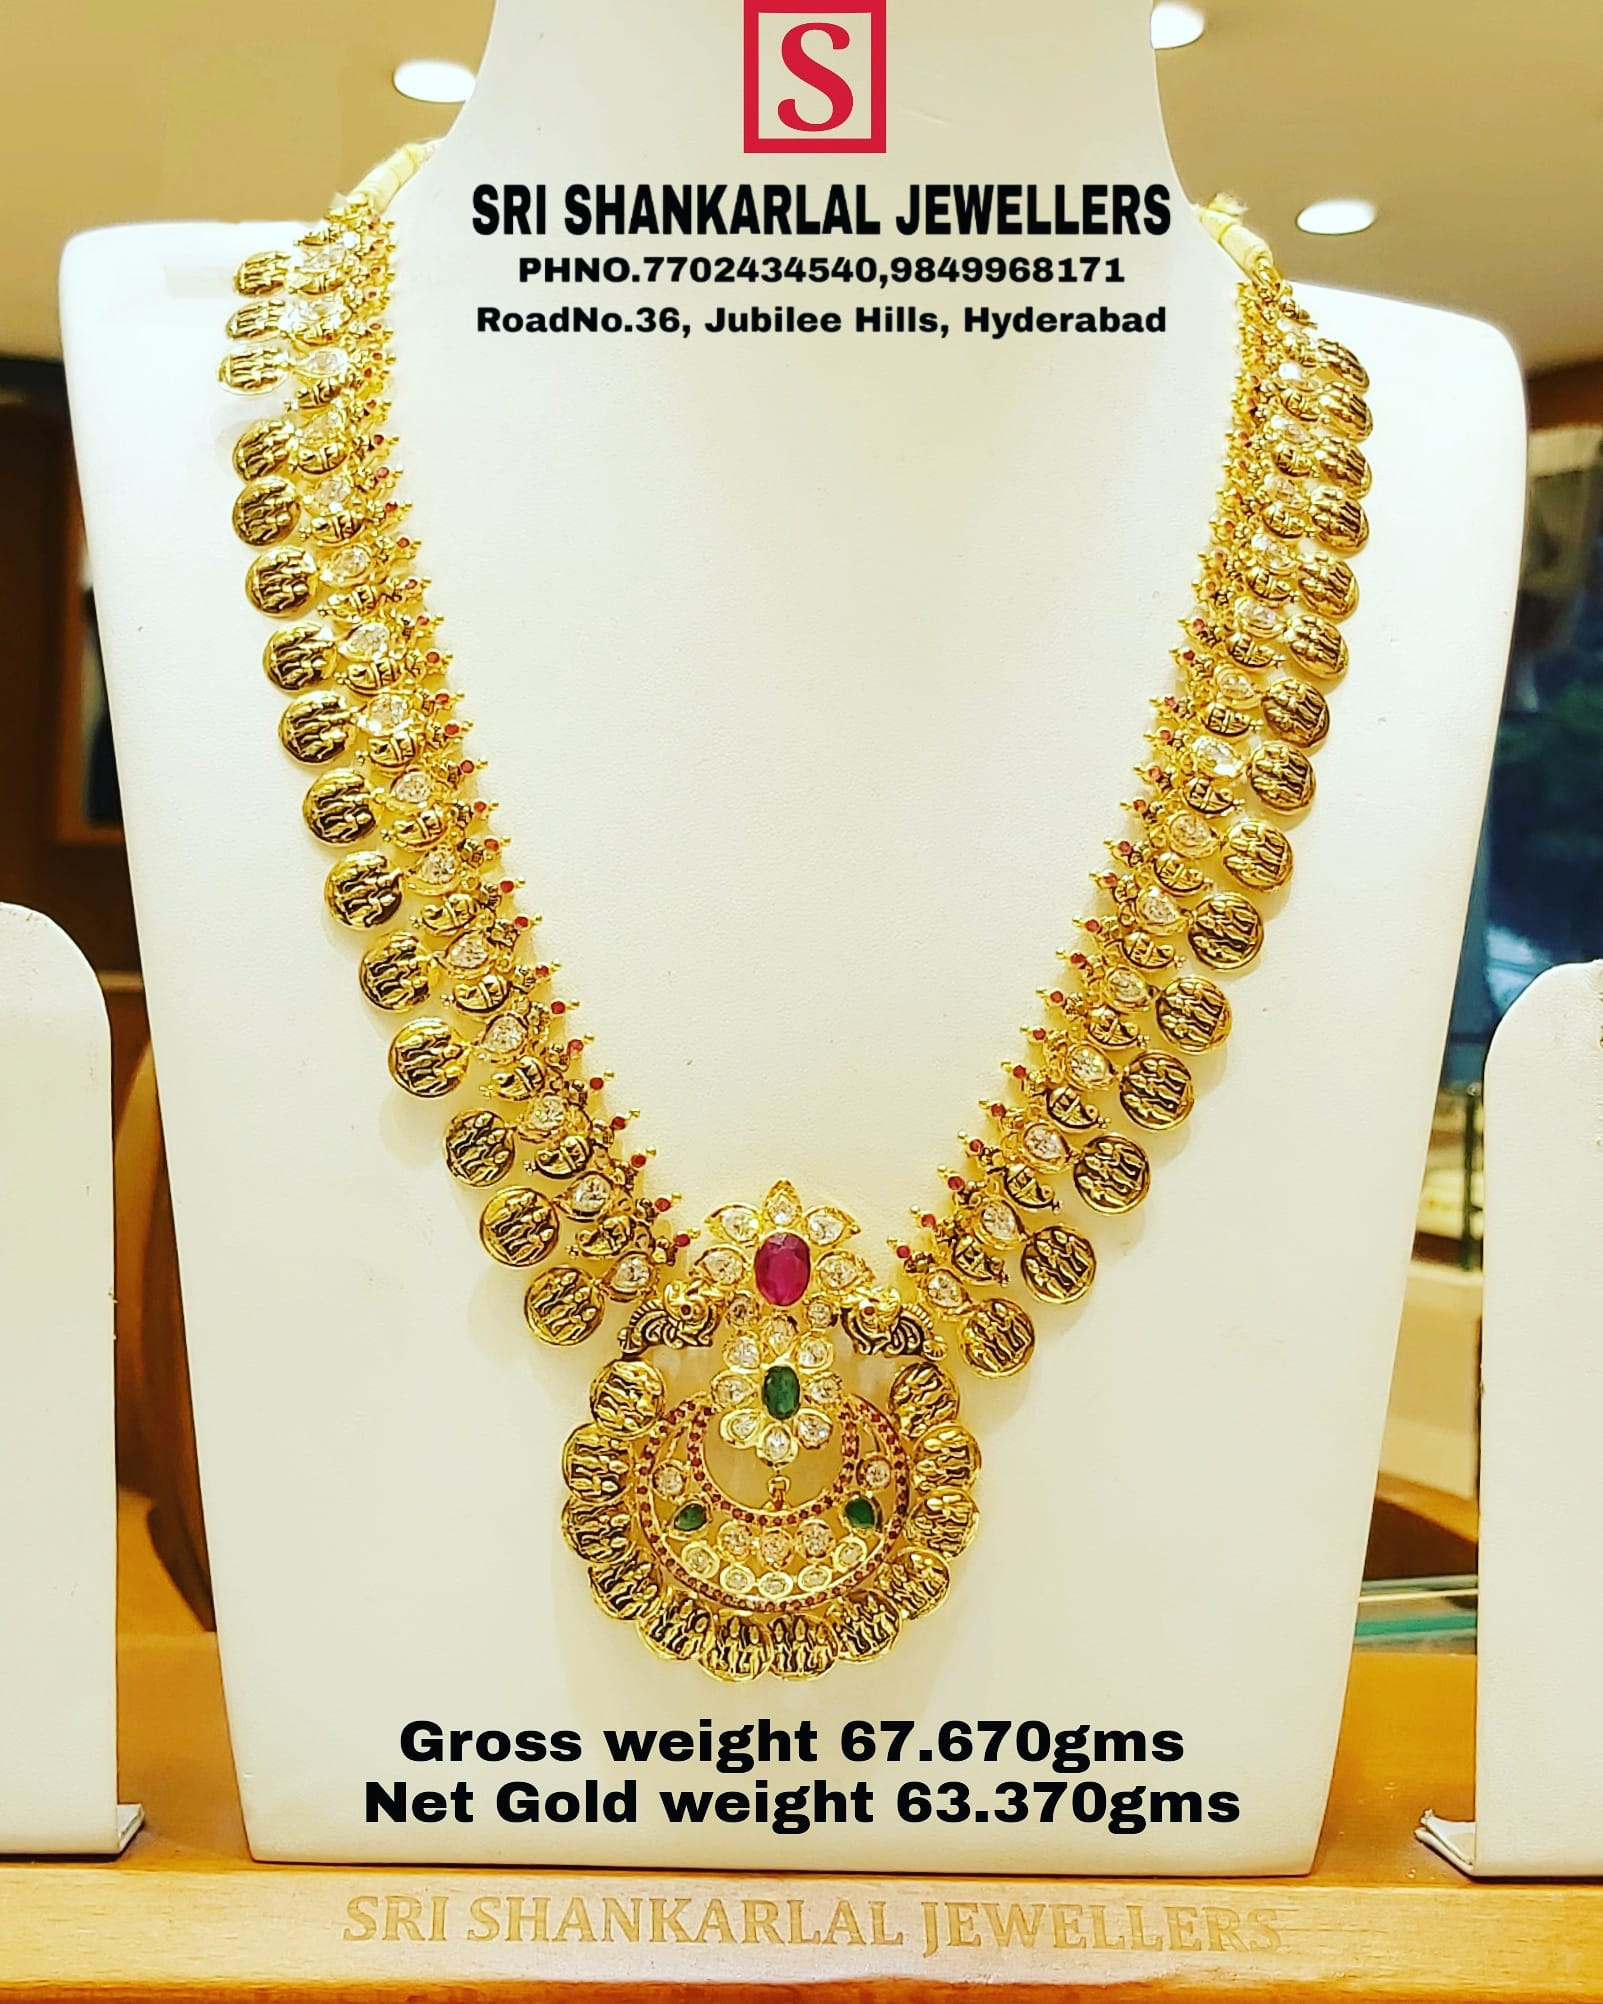 Latest Ramparivar Haram vaddyanam and detachable locket in ruby Emrald cz stone in light weight in heavy looking gross weight 67.670gms Net weight 63.370gms and vast collection! 2021-06-06